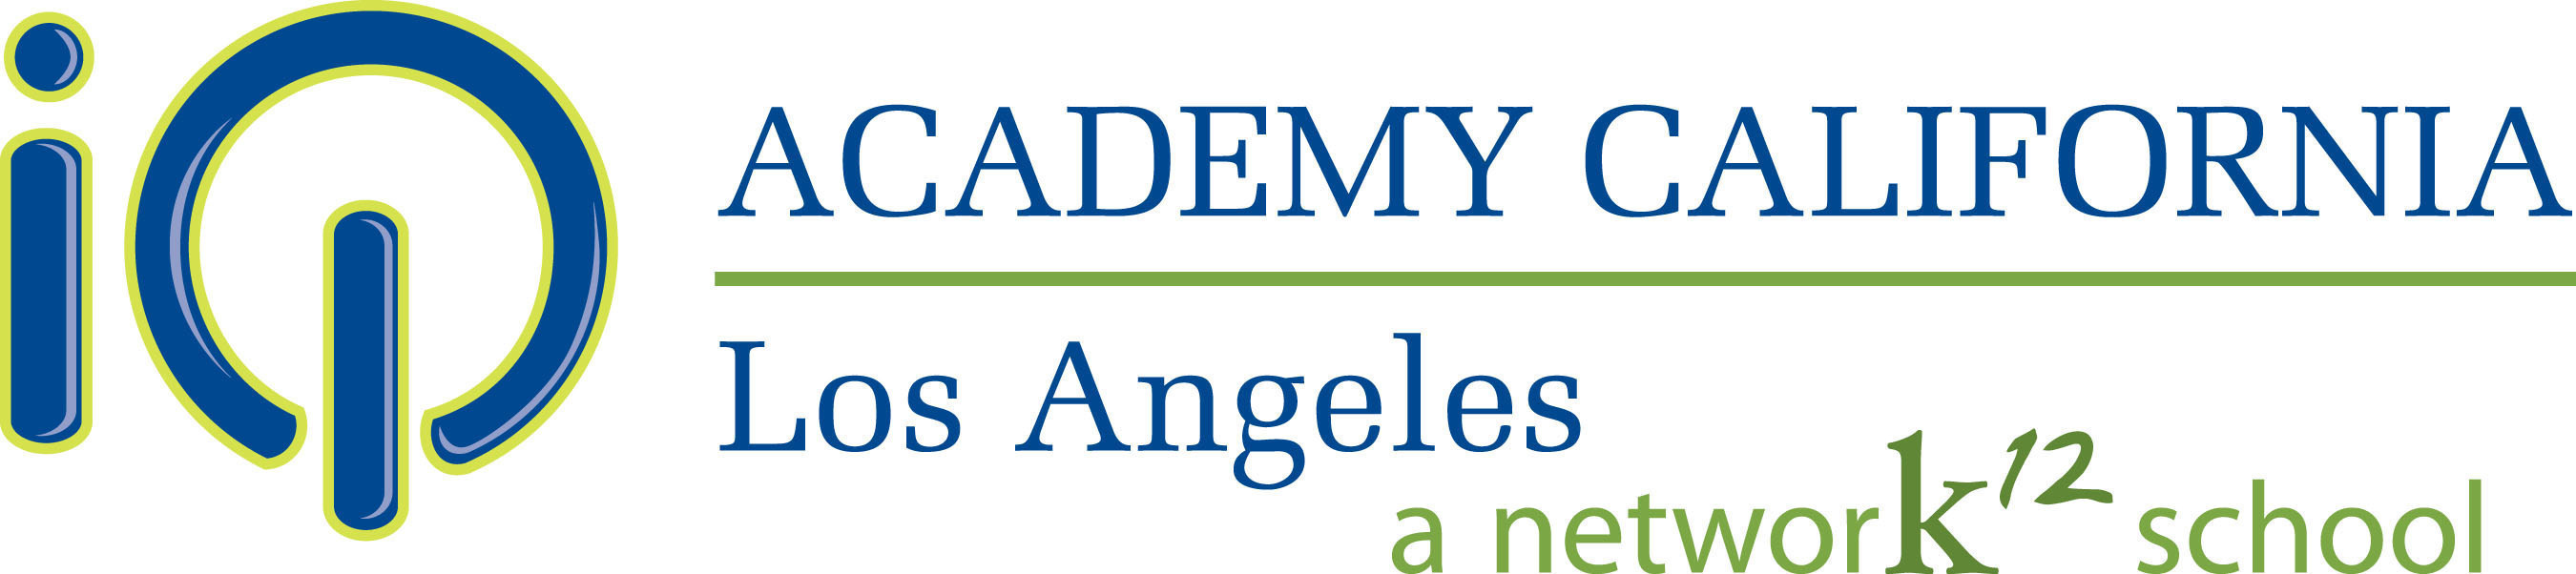 iQ Academy - Los Angeles